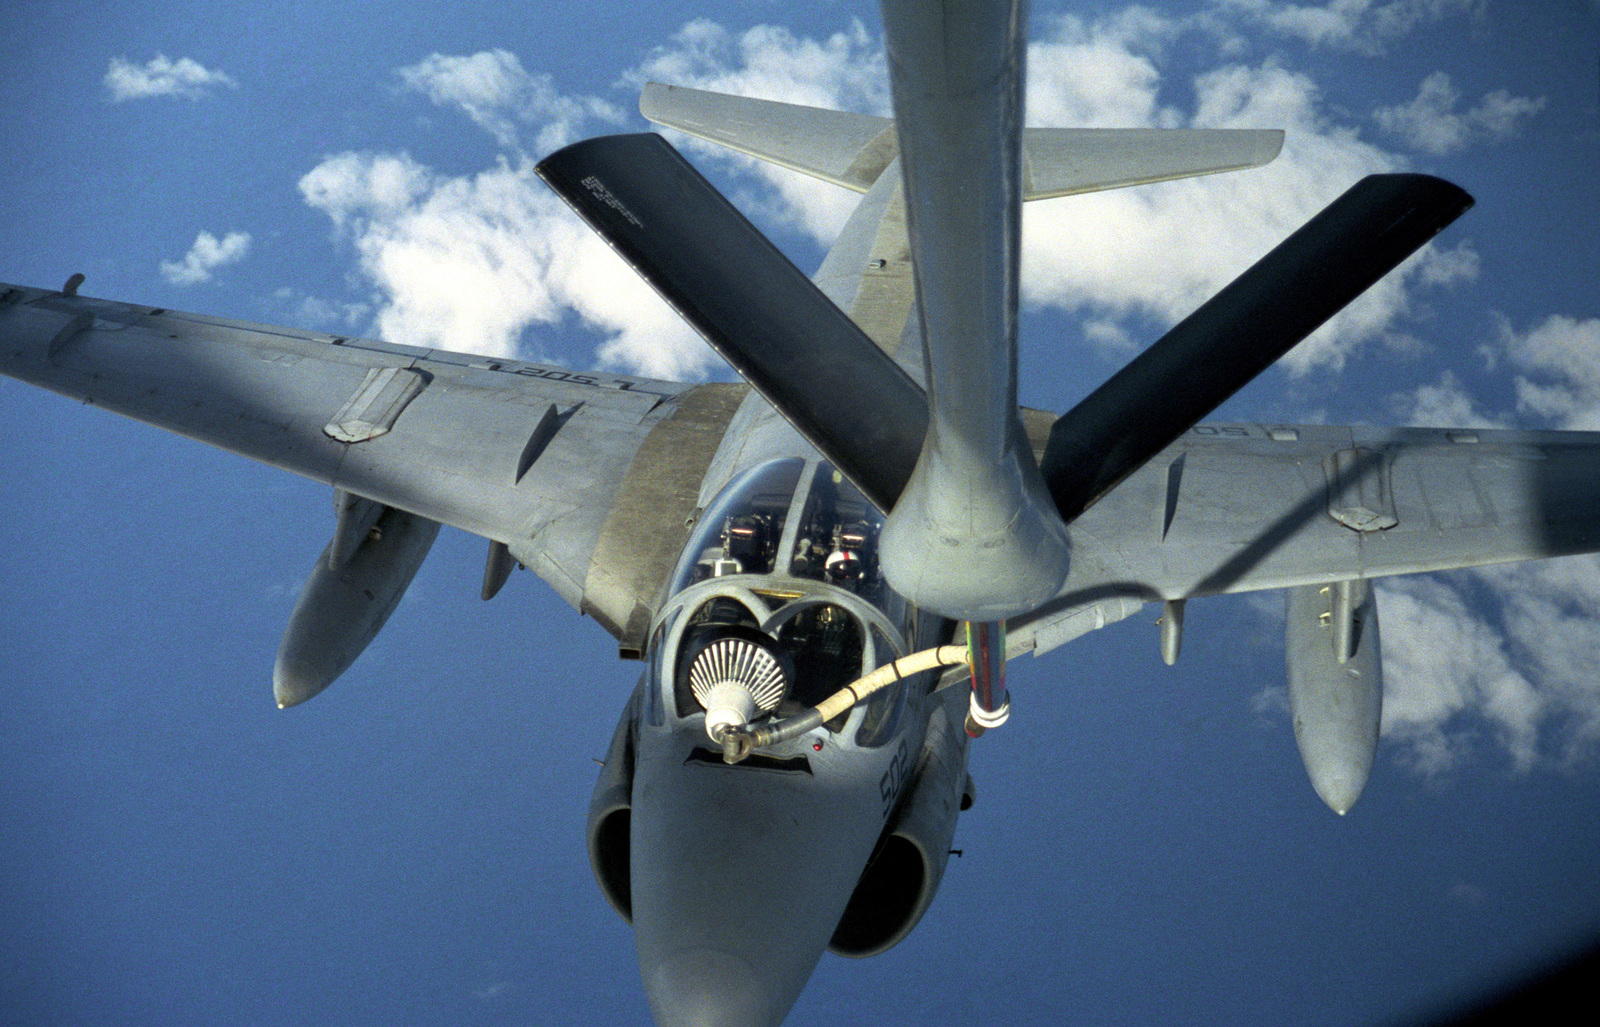 A US Navy (USN) A-6E Intruder connects with the refueling drogue from the boom of a US Air Force (USAF) KC-135 Stratotanker